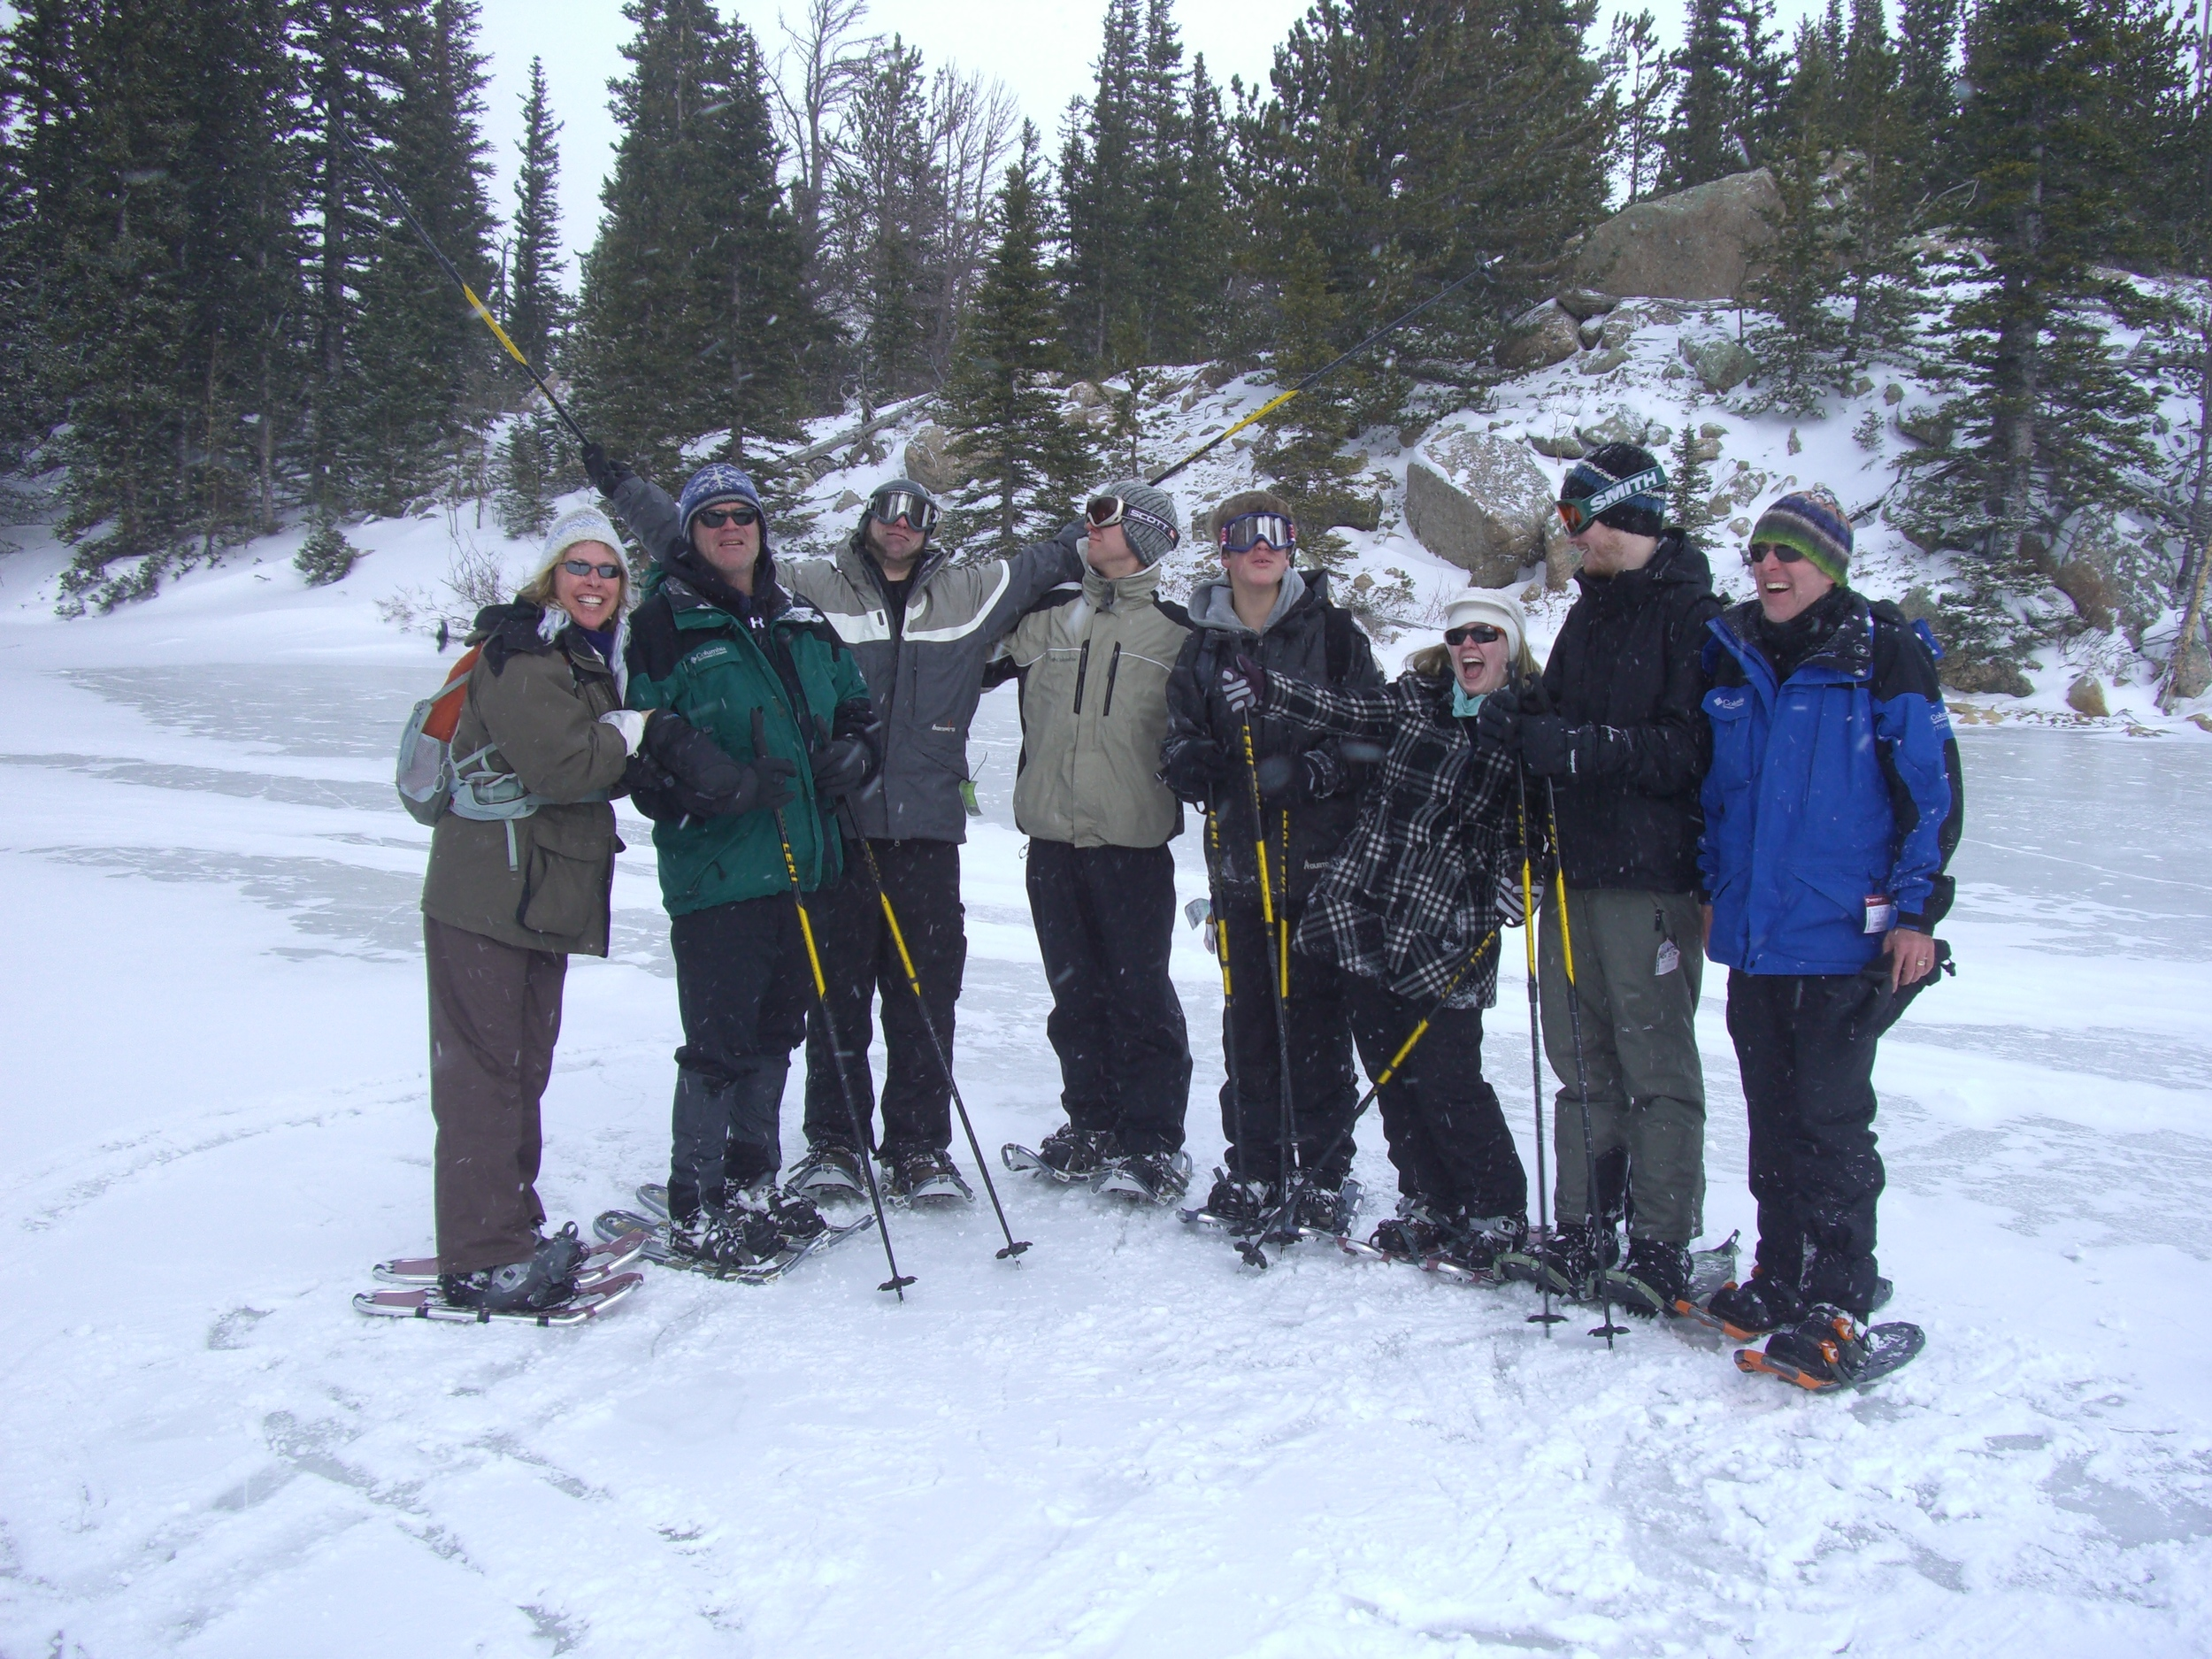 Take your family snowshoeing together! (we do!)